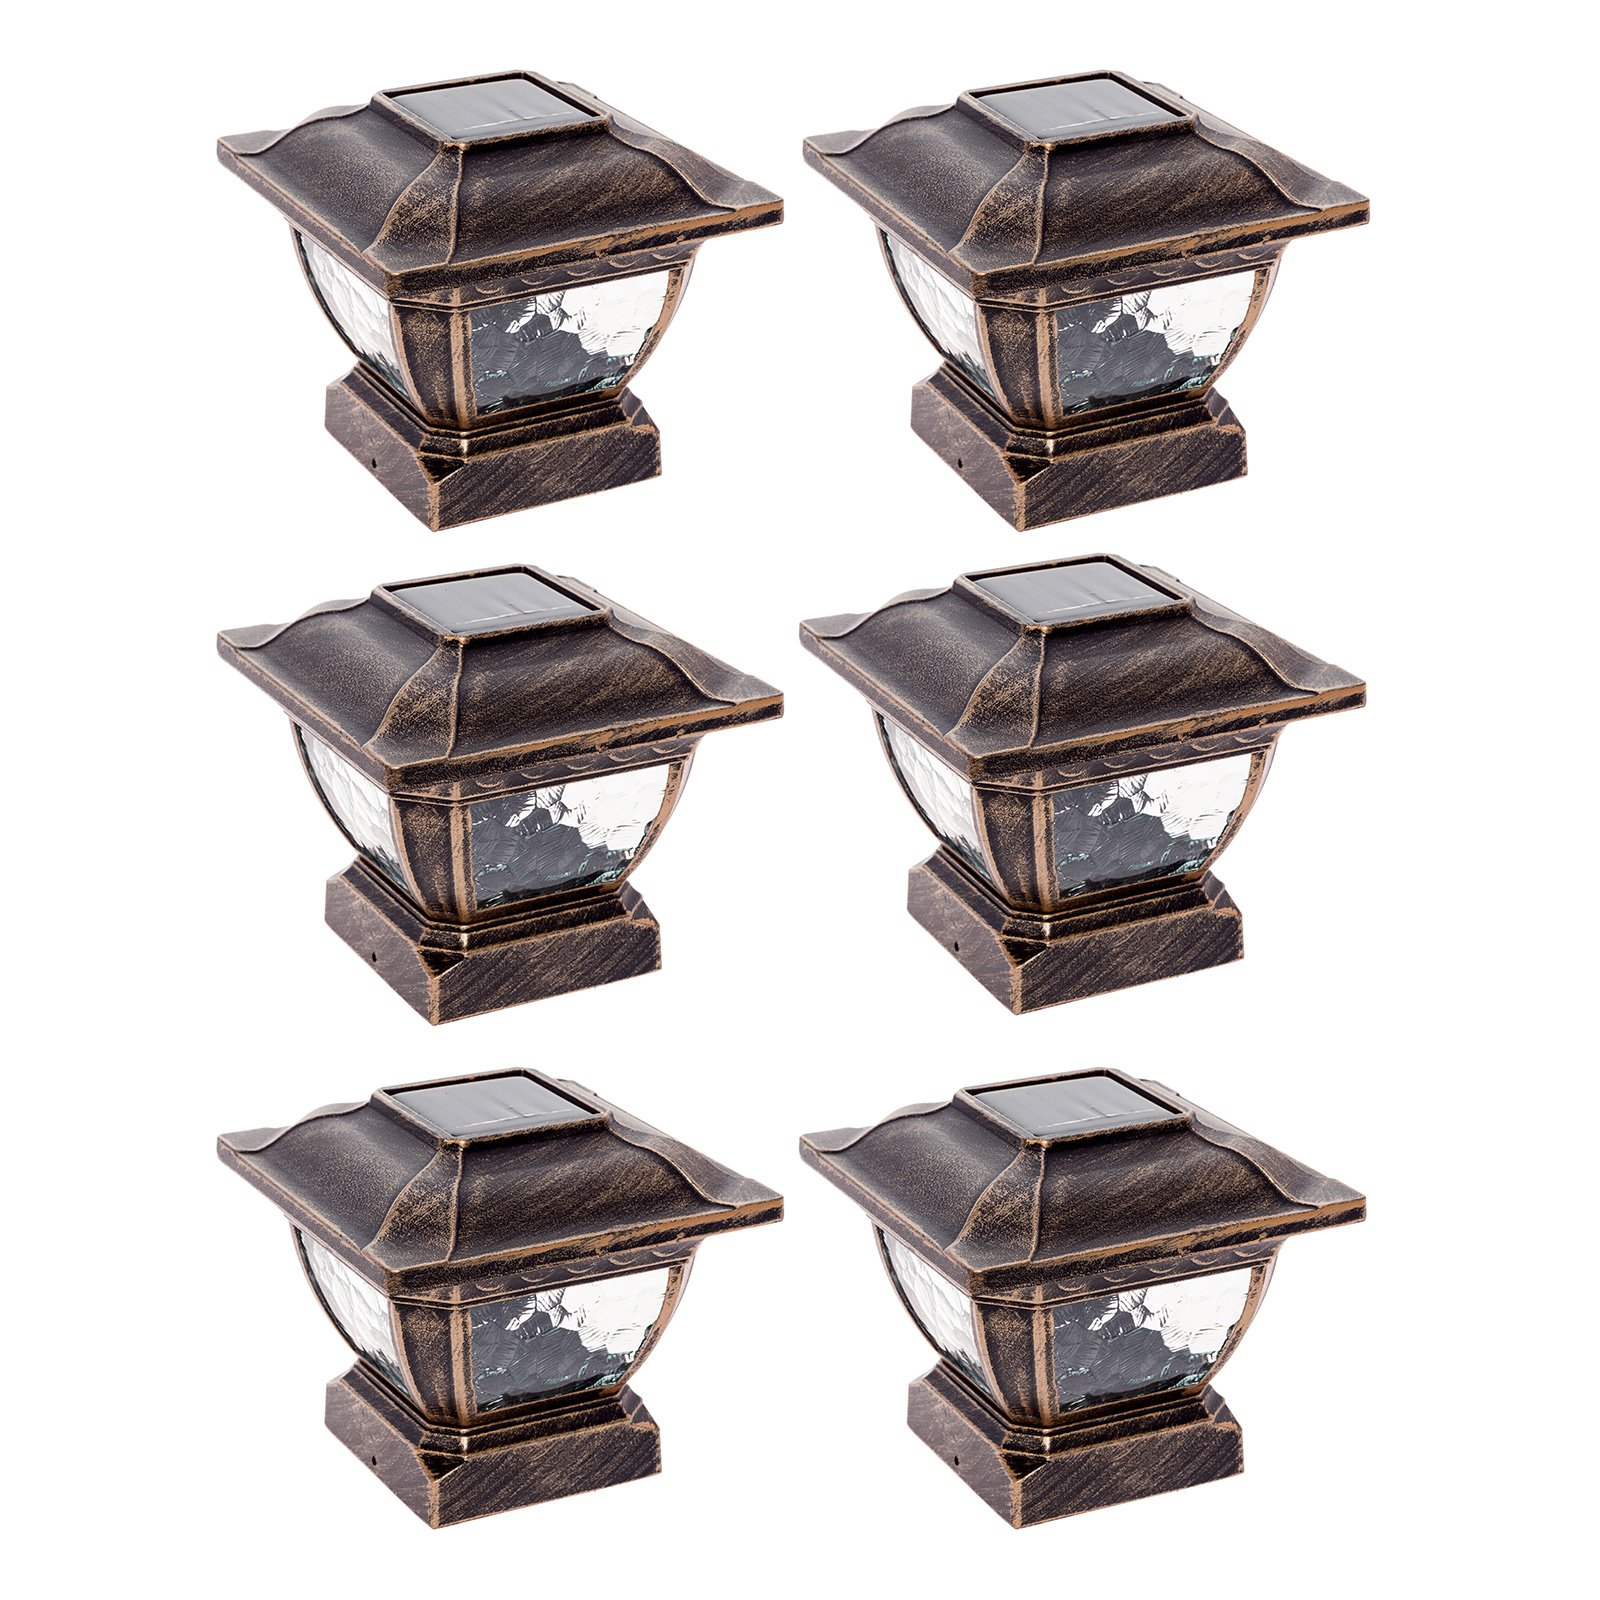 Paradise GL28998BZ Solar Cast Aluminum LED Post Cap Light for 4x4 Wood Posts (Bronze, 6 Pack) by Paradise (Image #1)